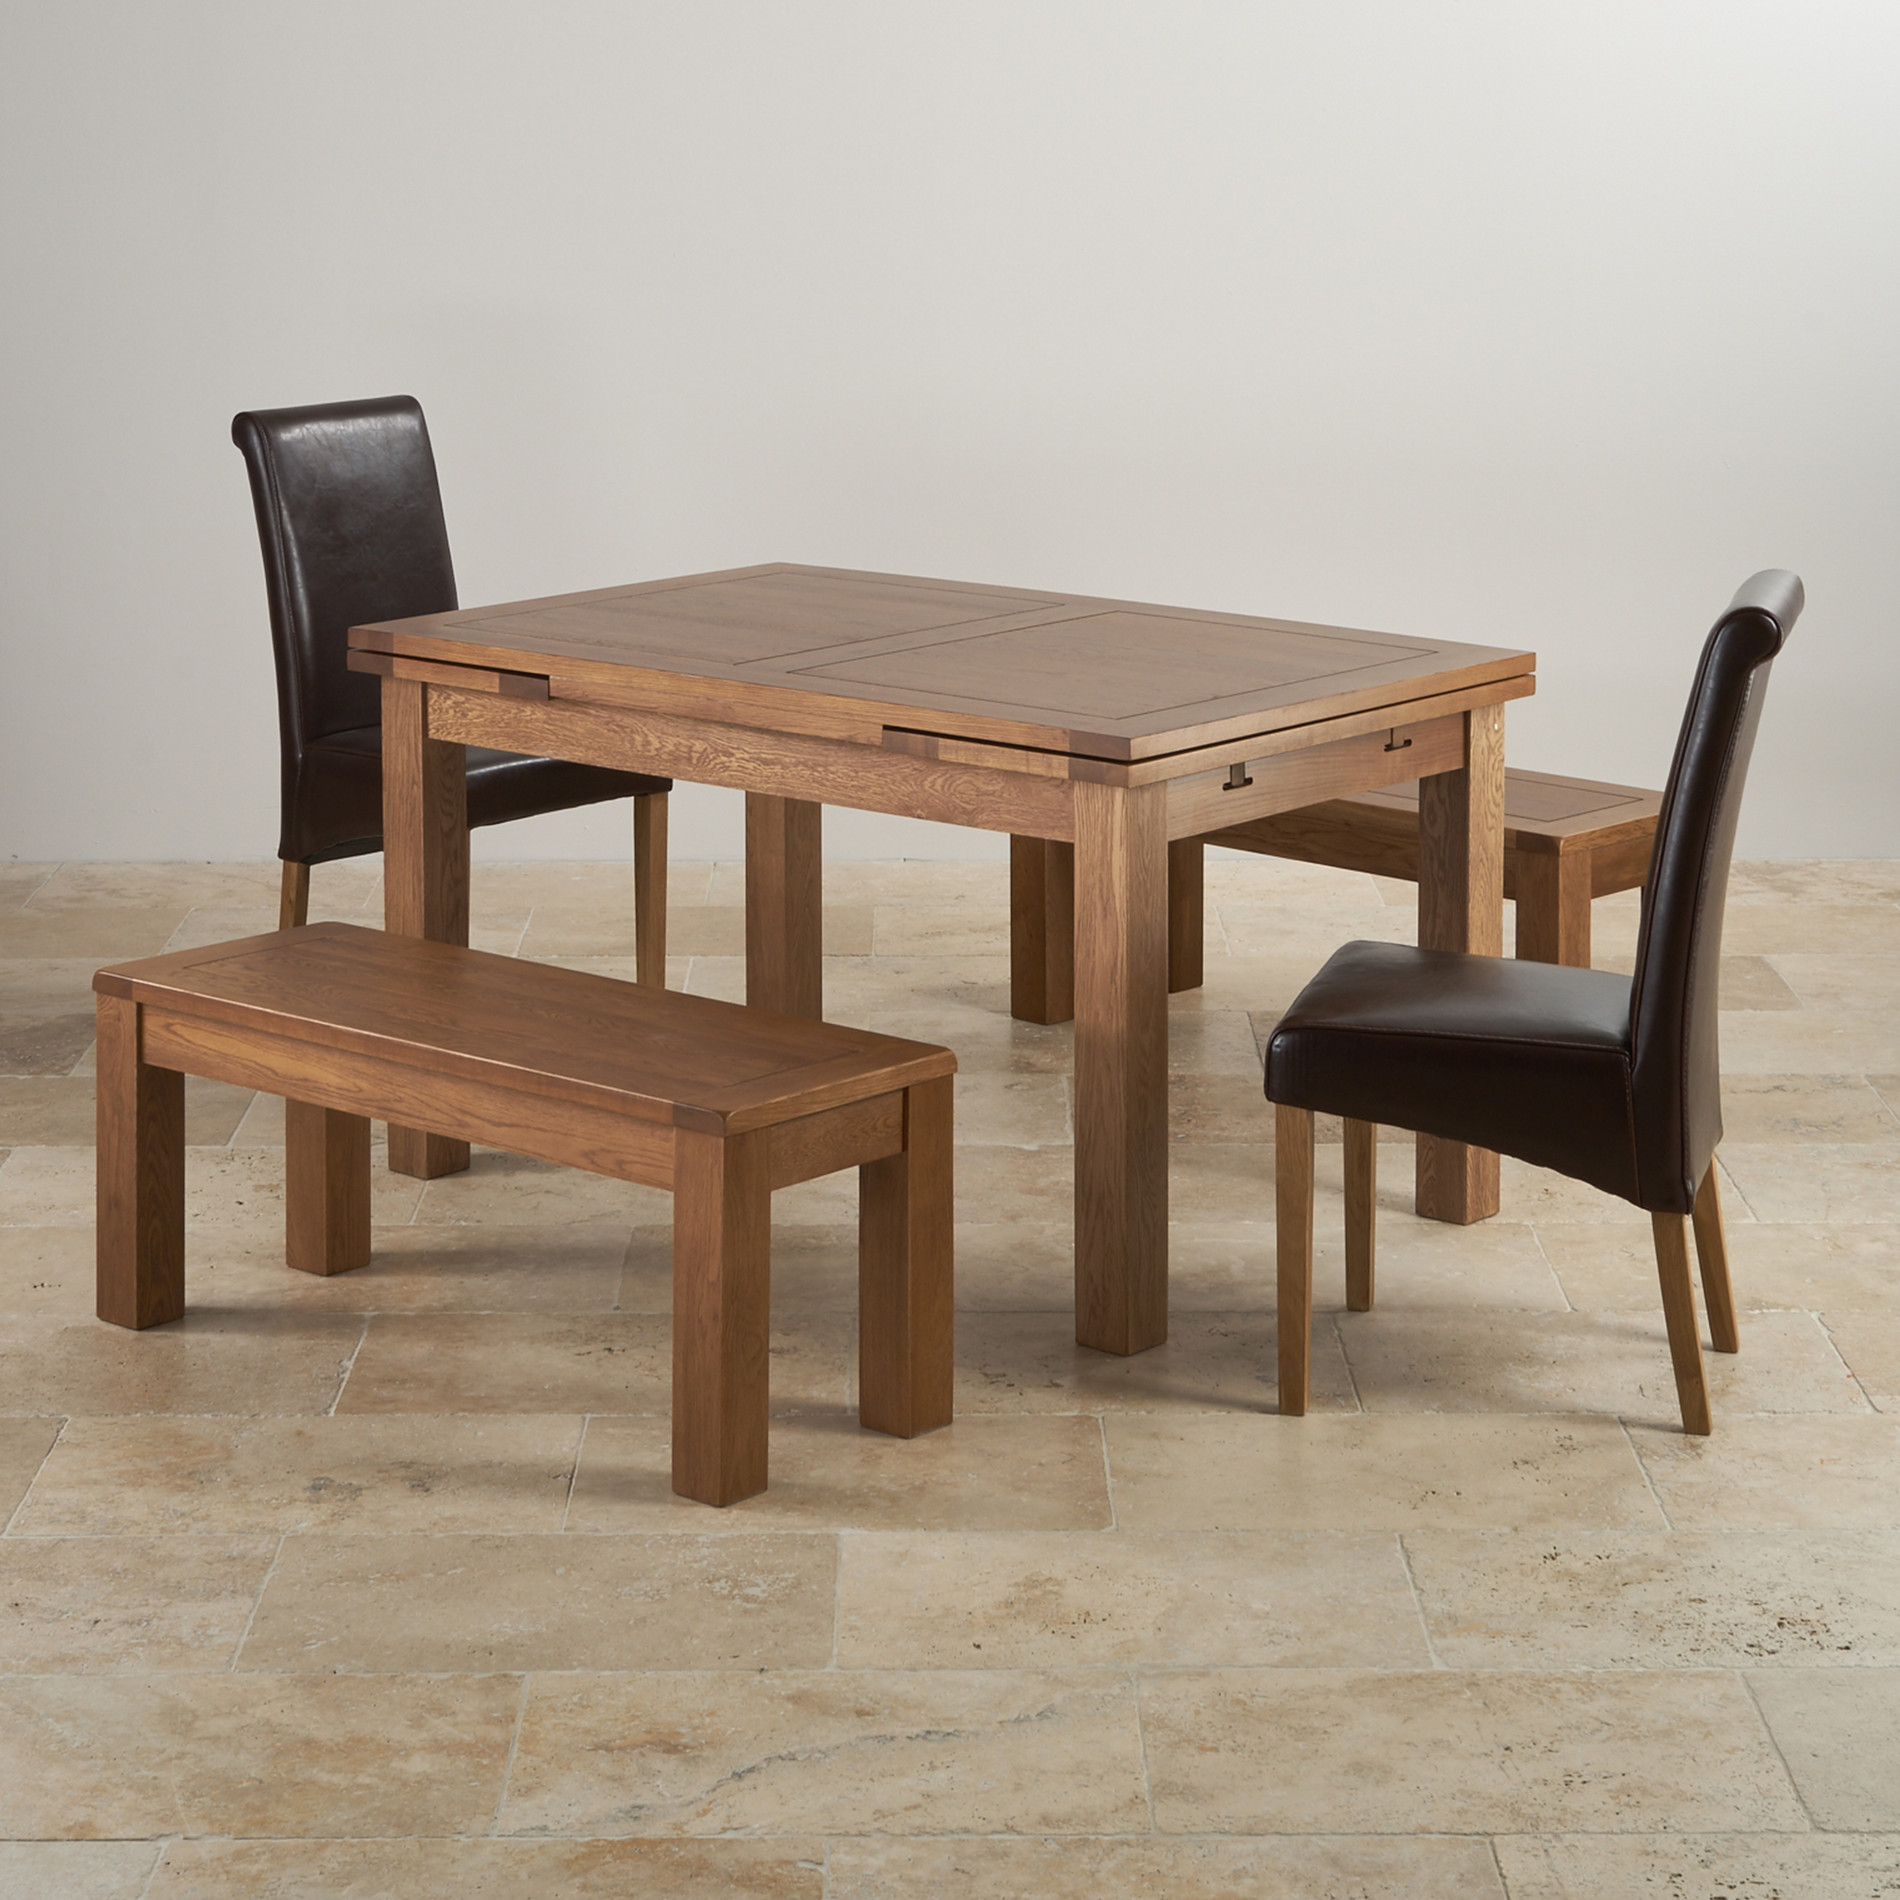 Oak Dining Set 4ft 7 Extending Table With 2 Benches And 2 Chairs. Full resolution‎  img, nominally Width 1900 Height 1900 pixels, img with #67472F.